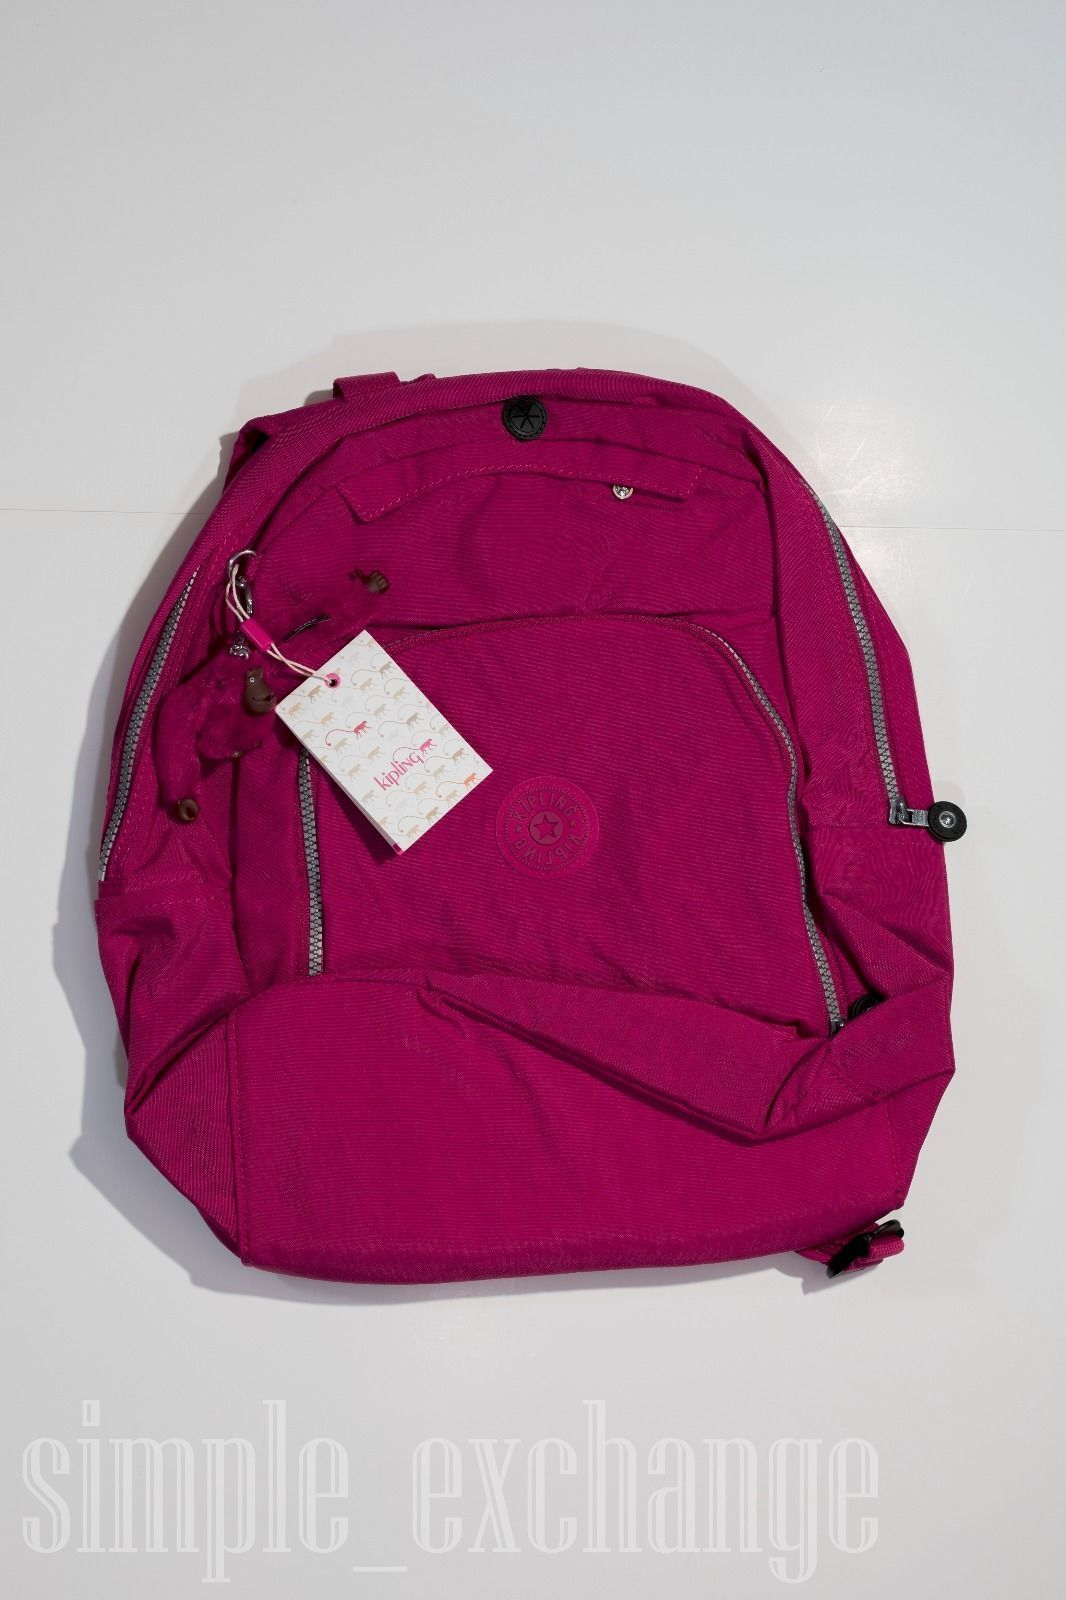 Kipling Medium Size Backpack for Small LaptopTablet Wered  Womenus